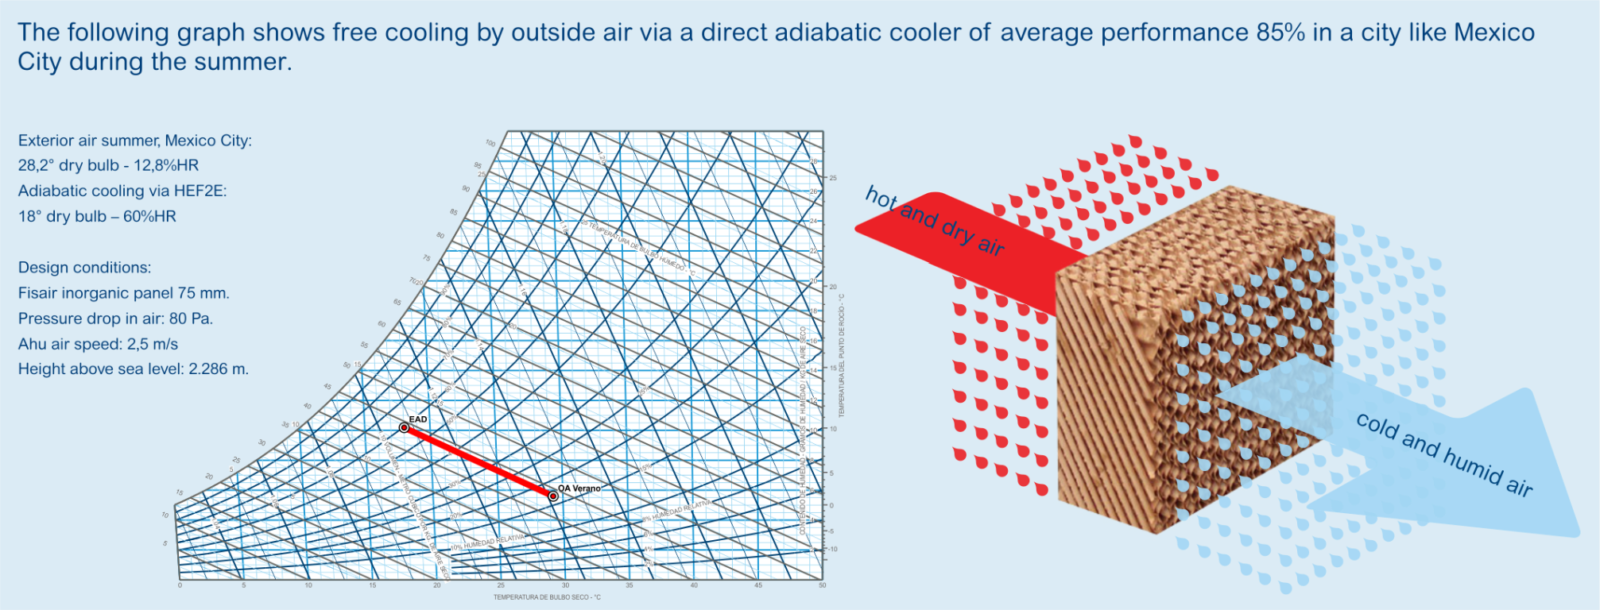 Evaporative Coolers In Data Processing Centers Fisair